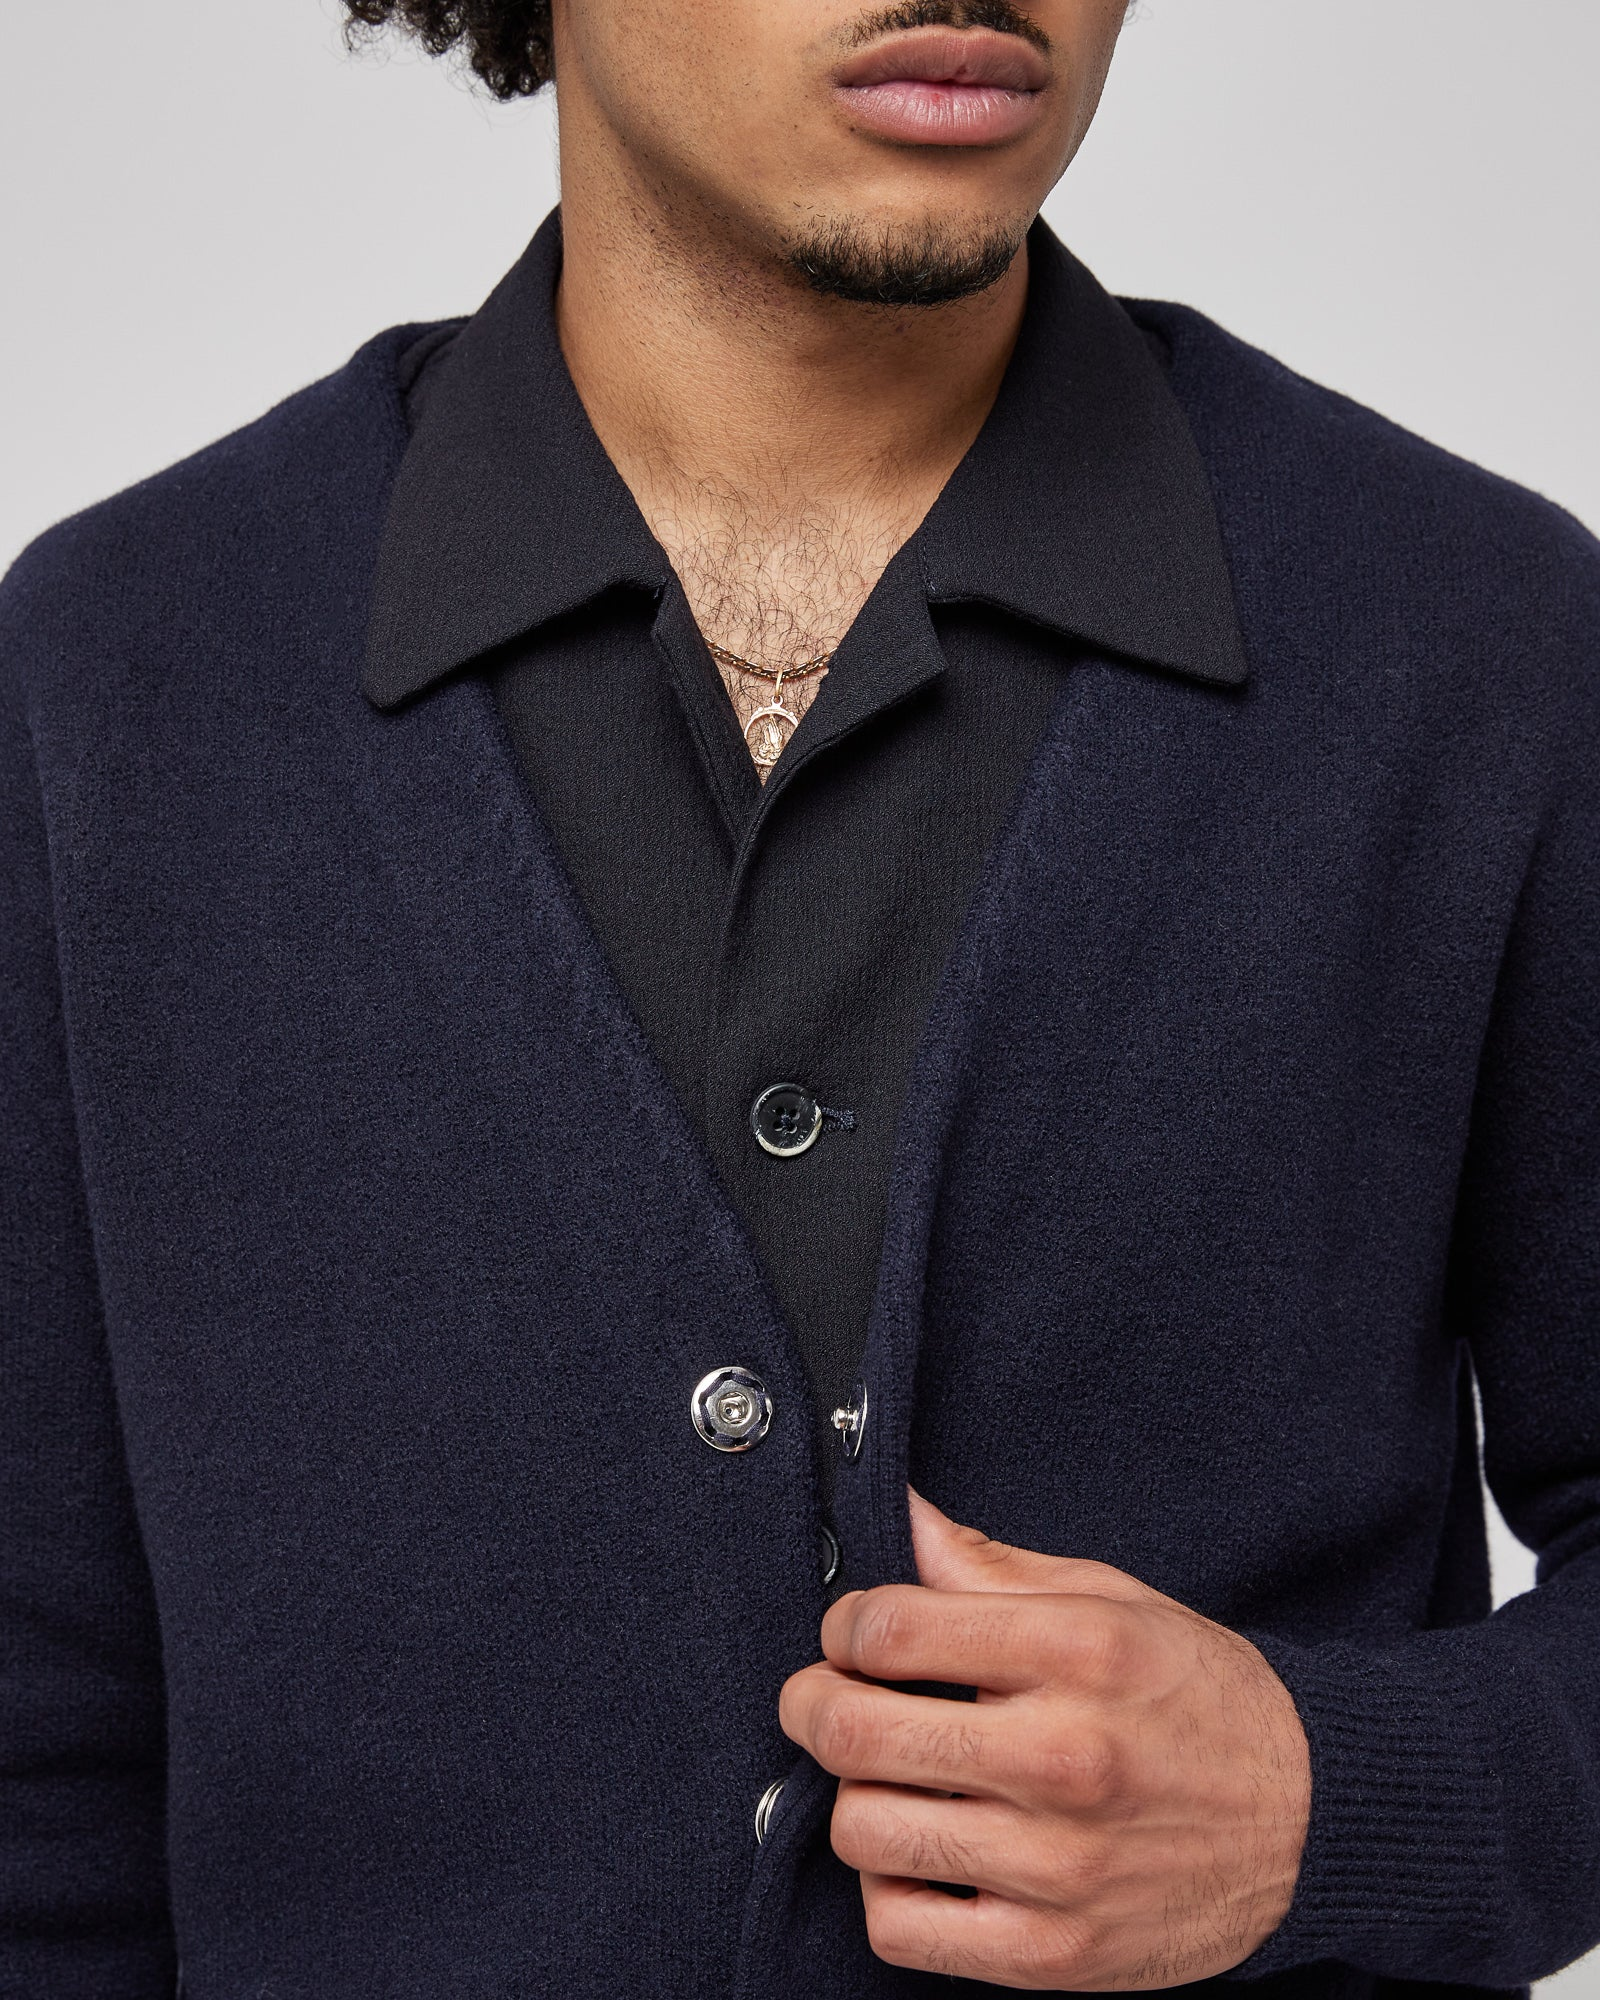 Menego Sweater in Navy